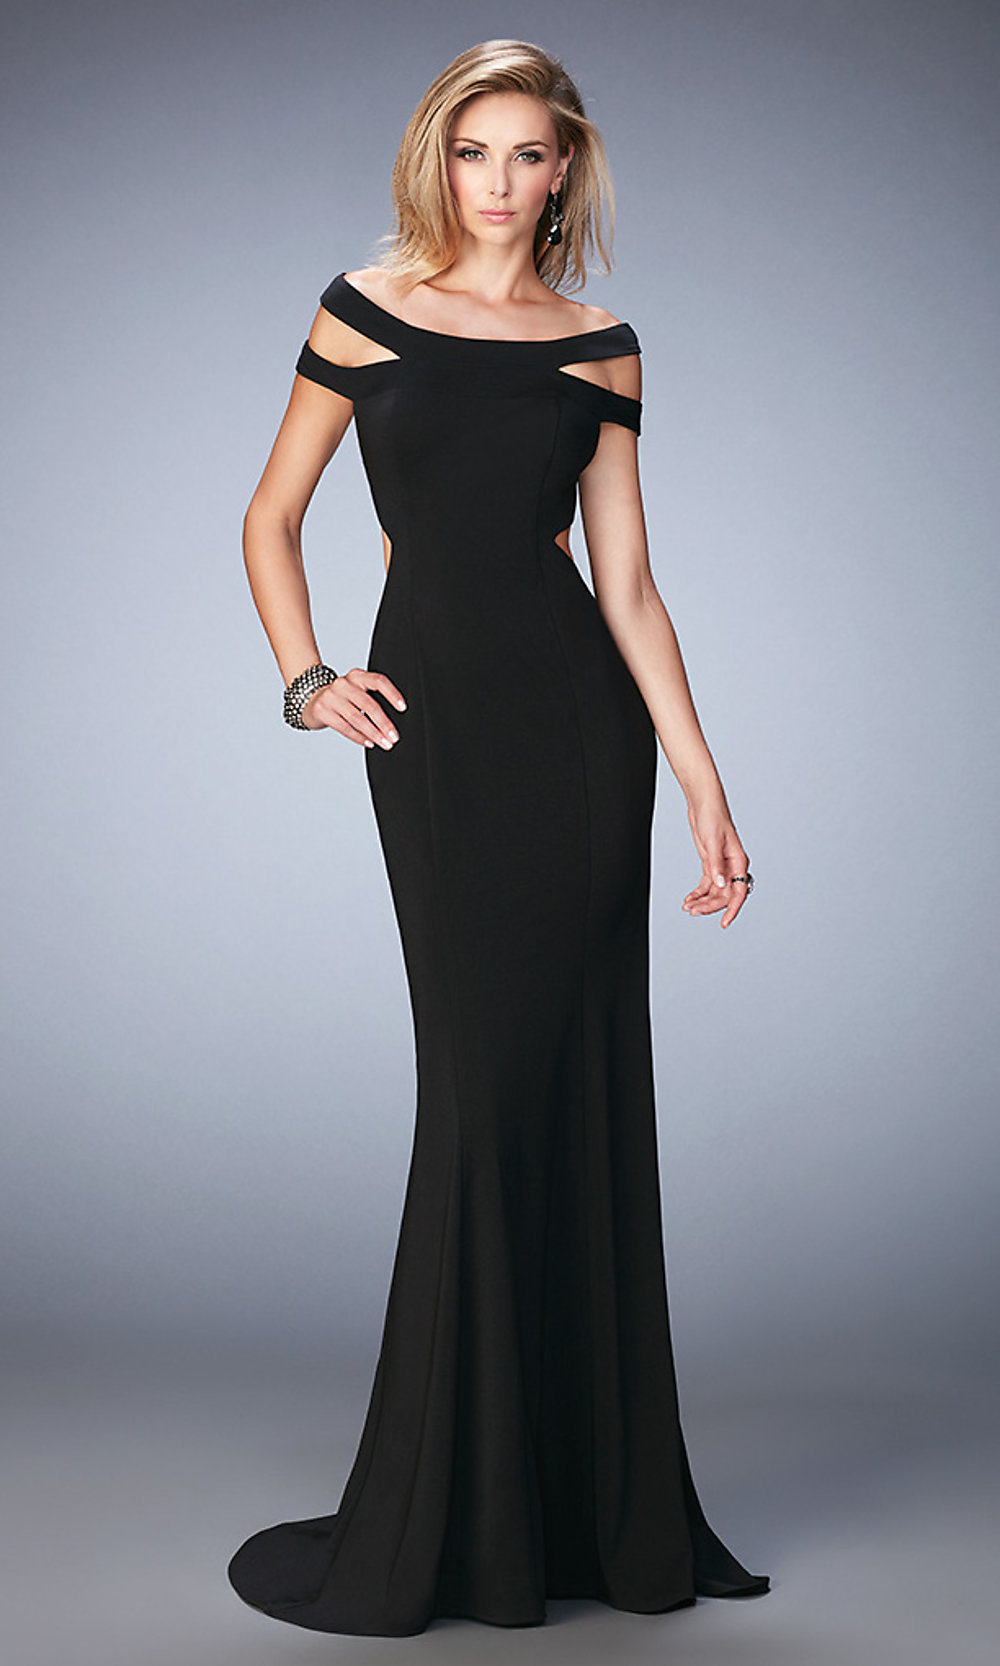 Off-the-Shoulder Wedding Dresses Dresses Dresses for your body type. Looking for your perfect dress? Explore the different silhouettes (dress forms) for your body type. About Sheath Dresses. Ideal for showing off your figure and petite brides. These dresses fit close to the body and do not flare out. Filters. Apply.